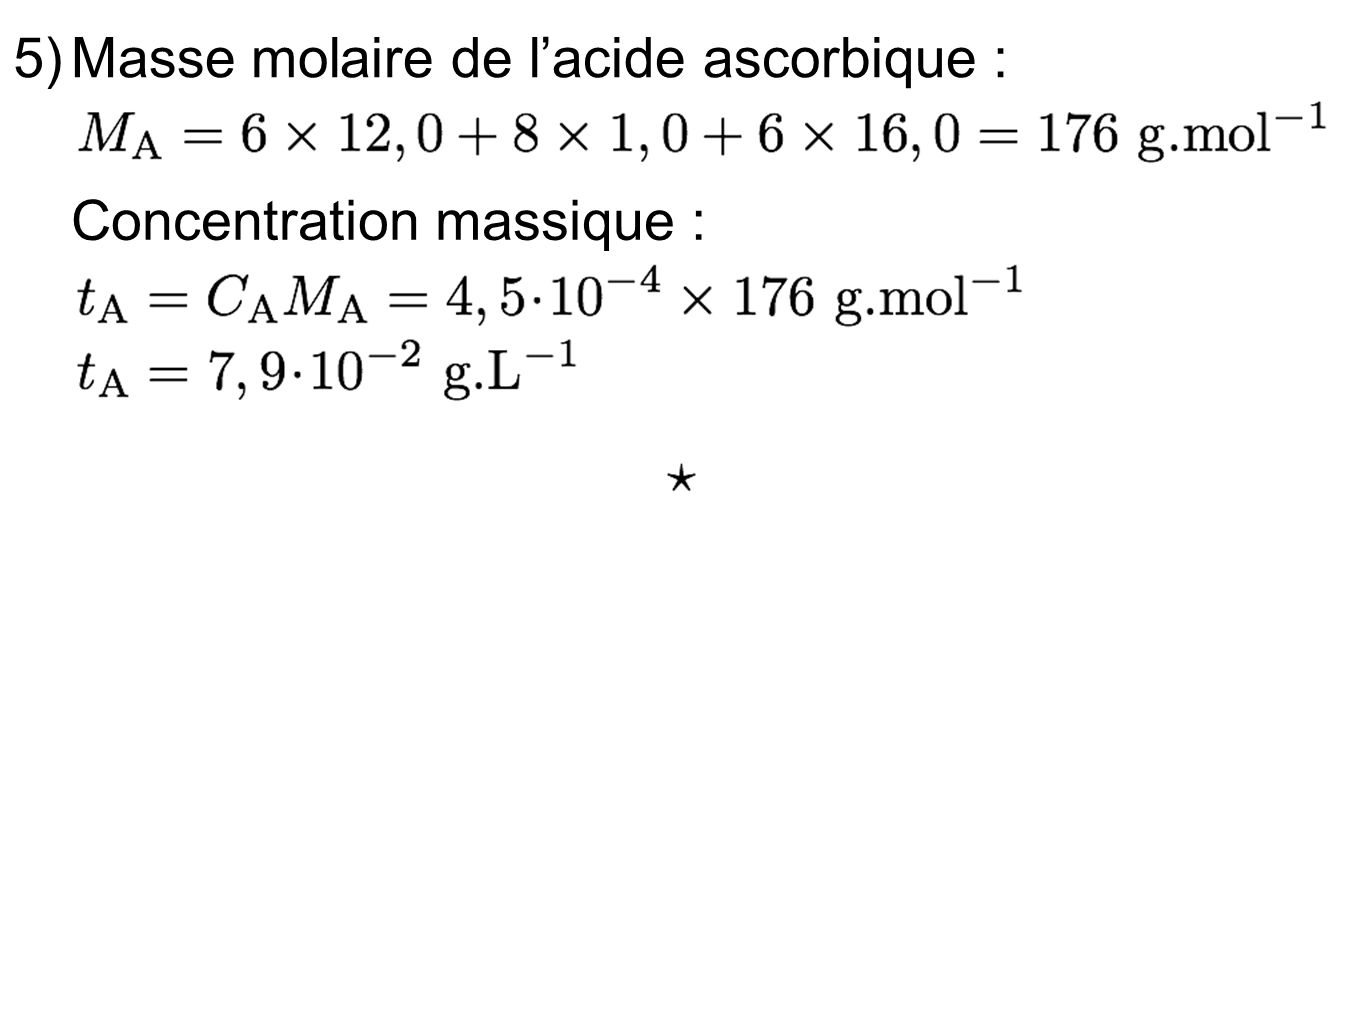 5) Masse molaire de l'acide ascorbique : Concentration massique :